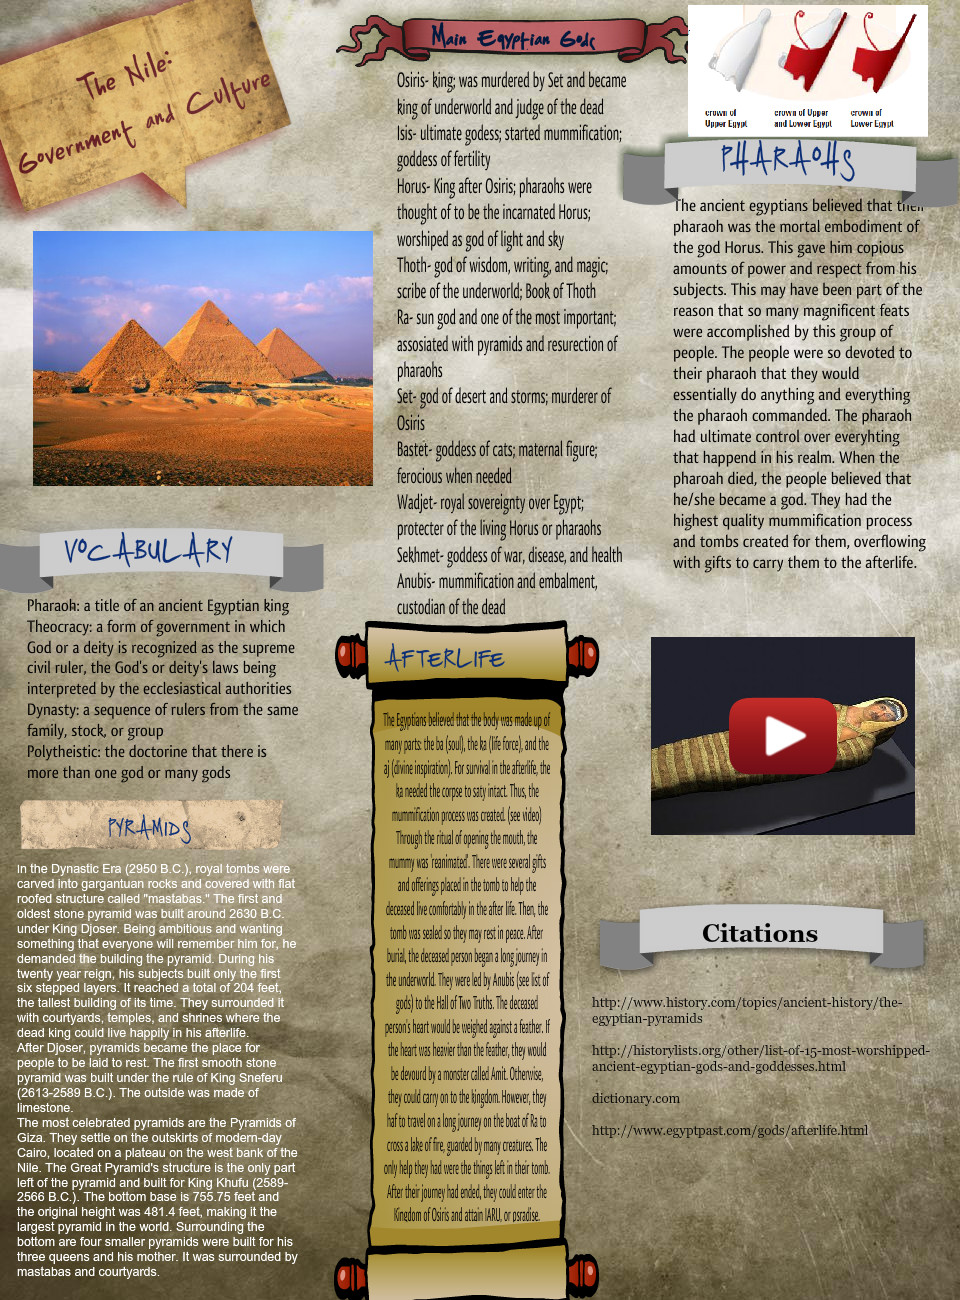 The Nile (history project)